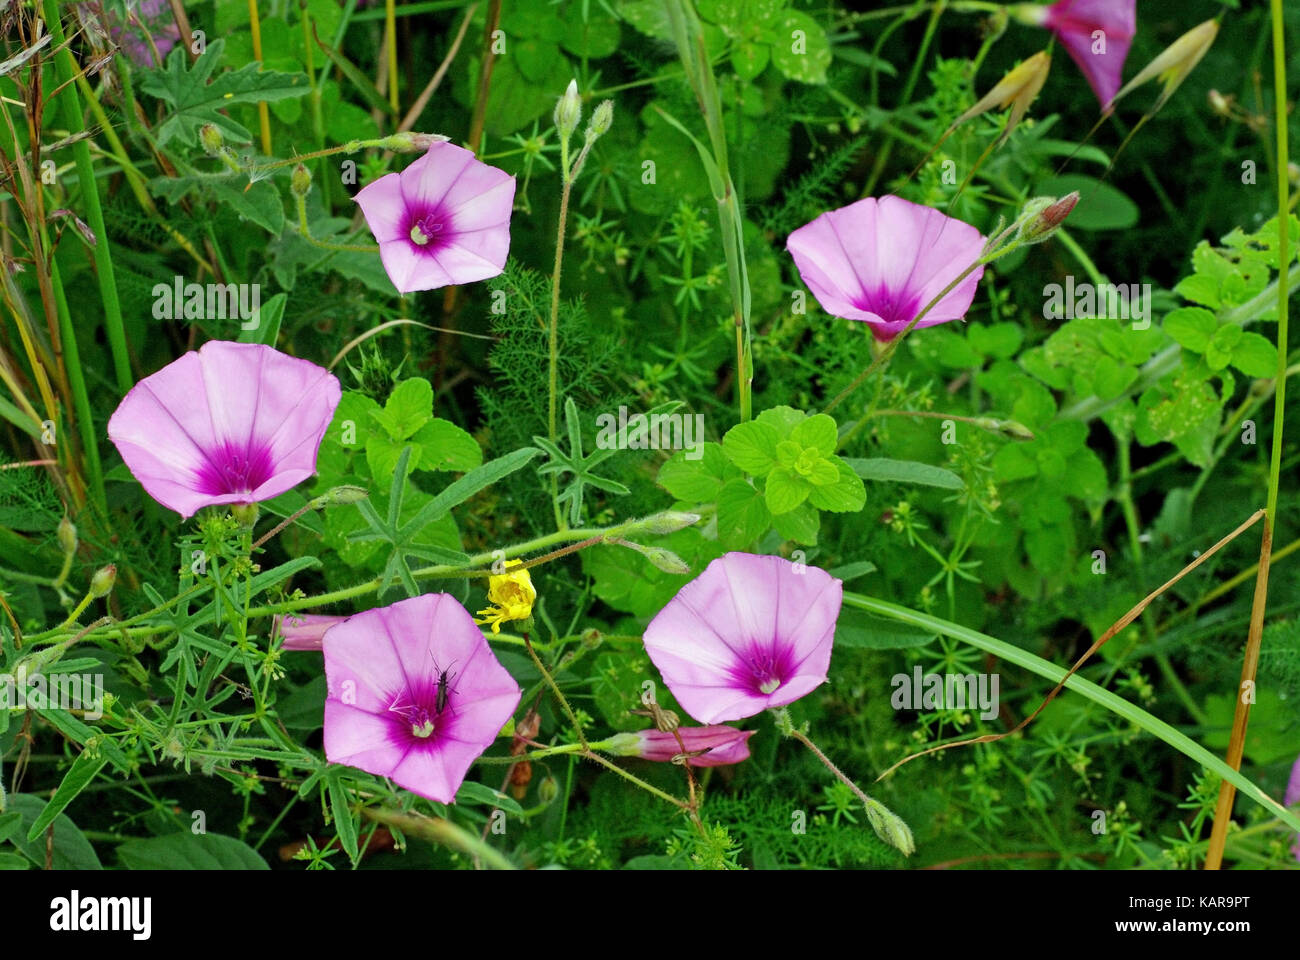 the wild flower Convolvolus althaeoides, the Mallow bindweed or Mallow-leaved bindweed, from the family Convolvulaceae, - Stock Image